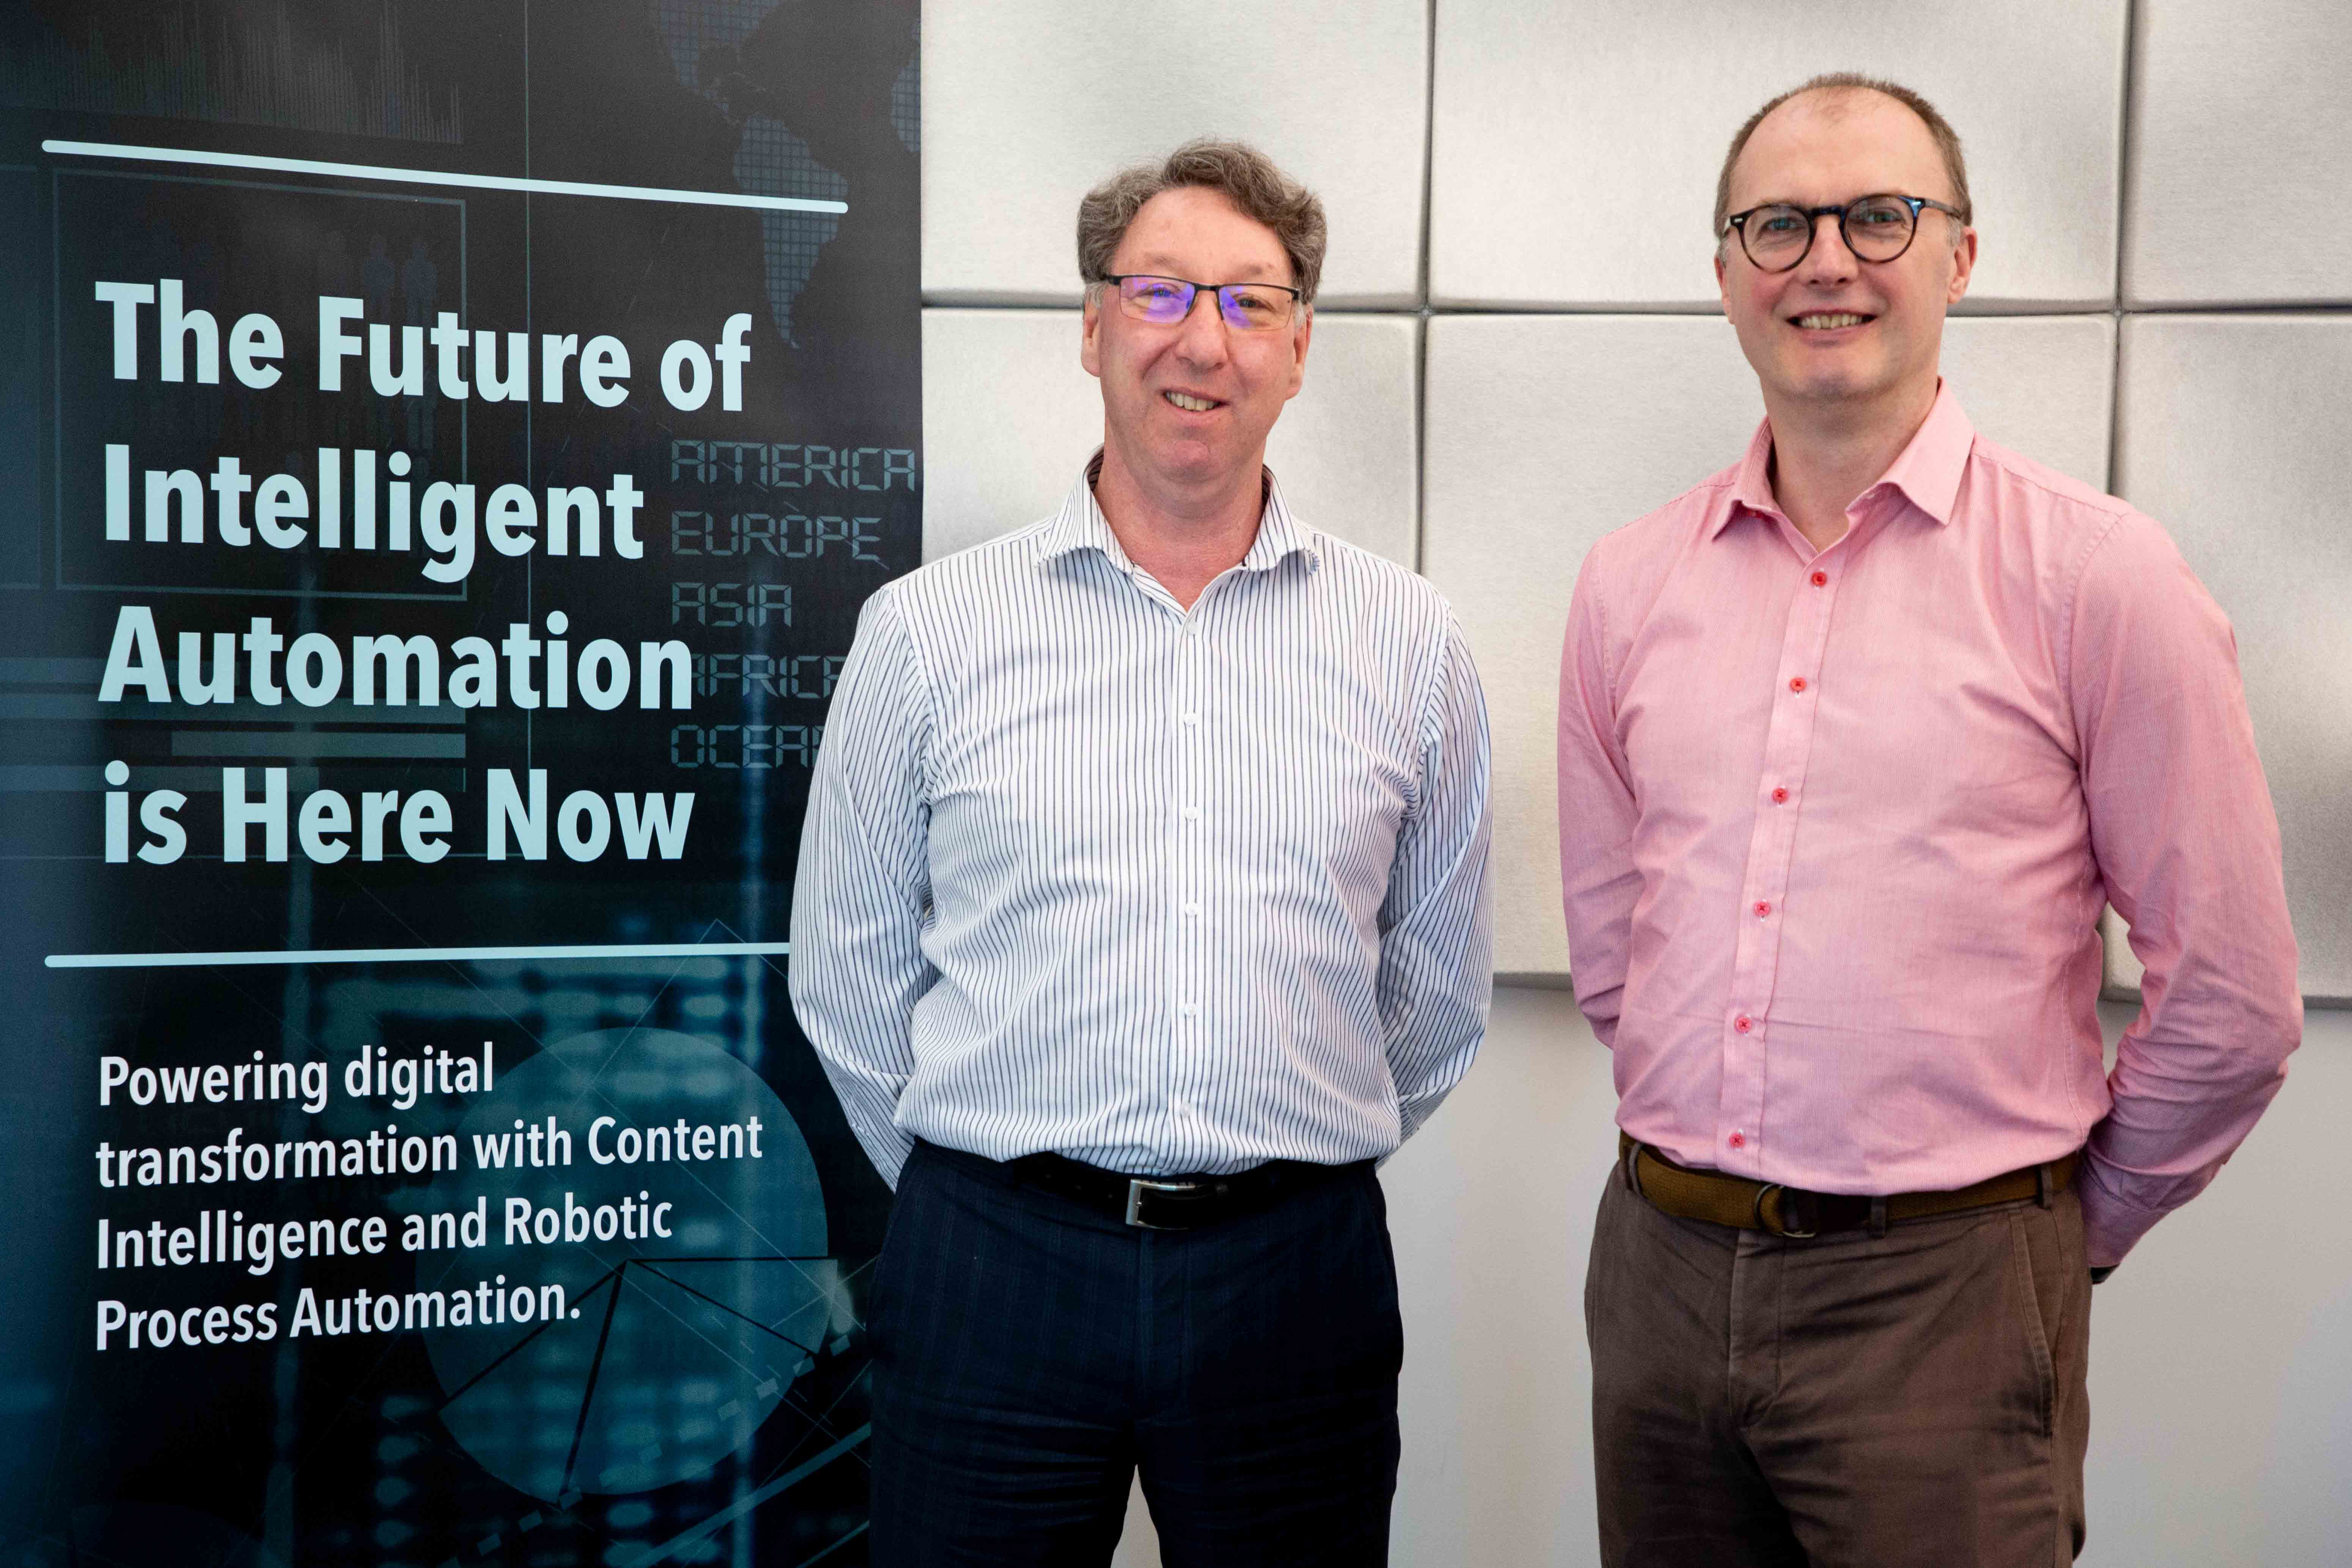 Probotics Acquisition Garry Green and Barry Carruth